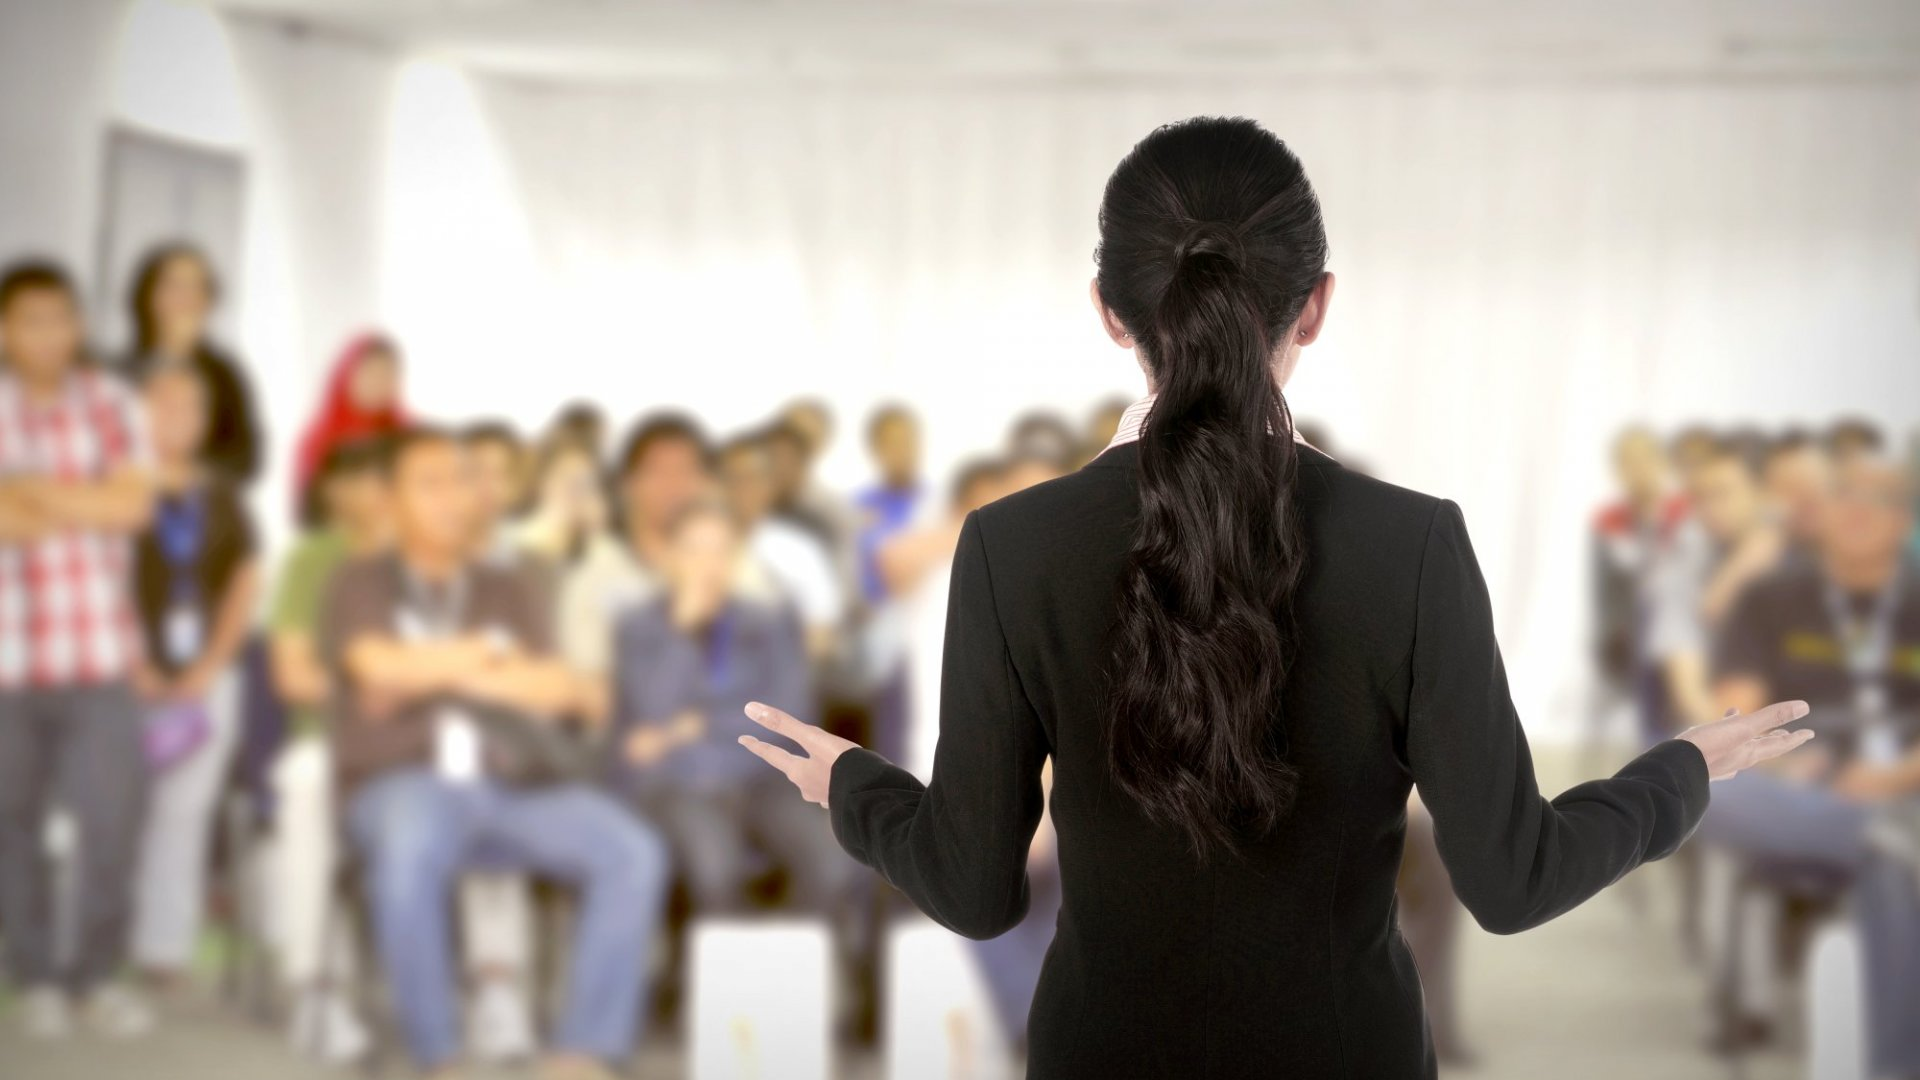 Convert Your Audience: 3 Steps to Self-Aware Public Speaking